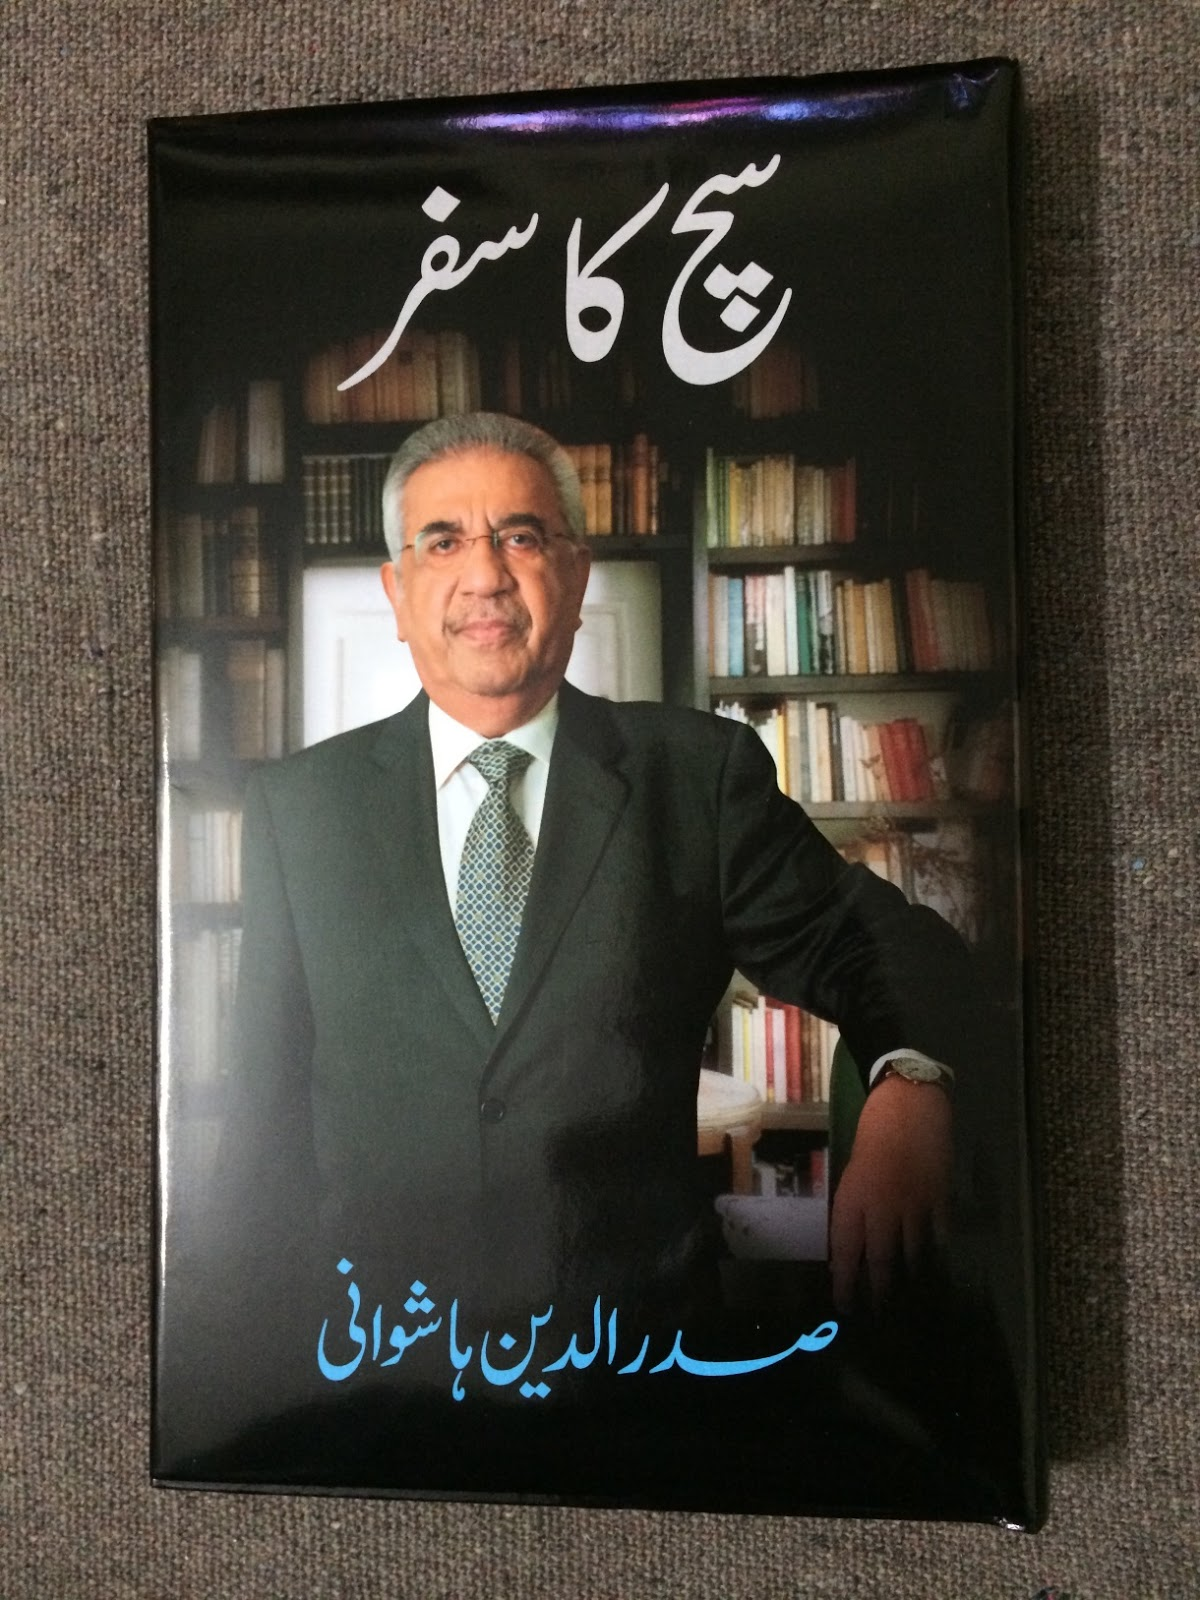 hashwani-memoir-truth-prevails-cover-Urdu